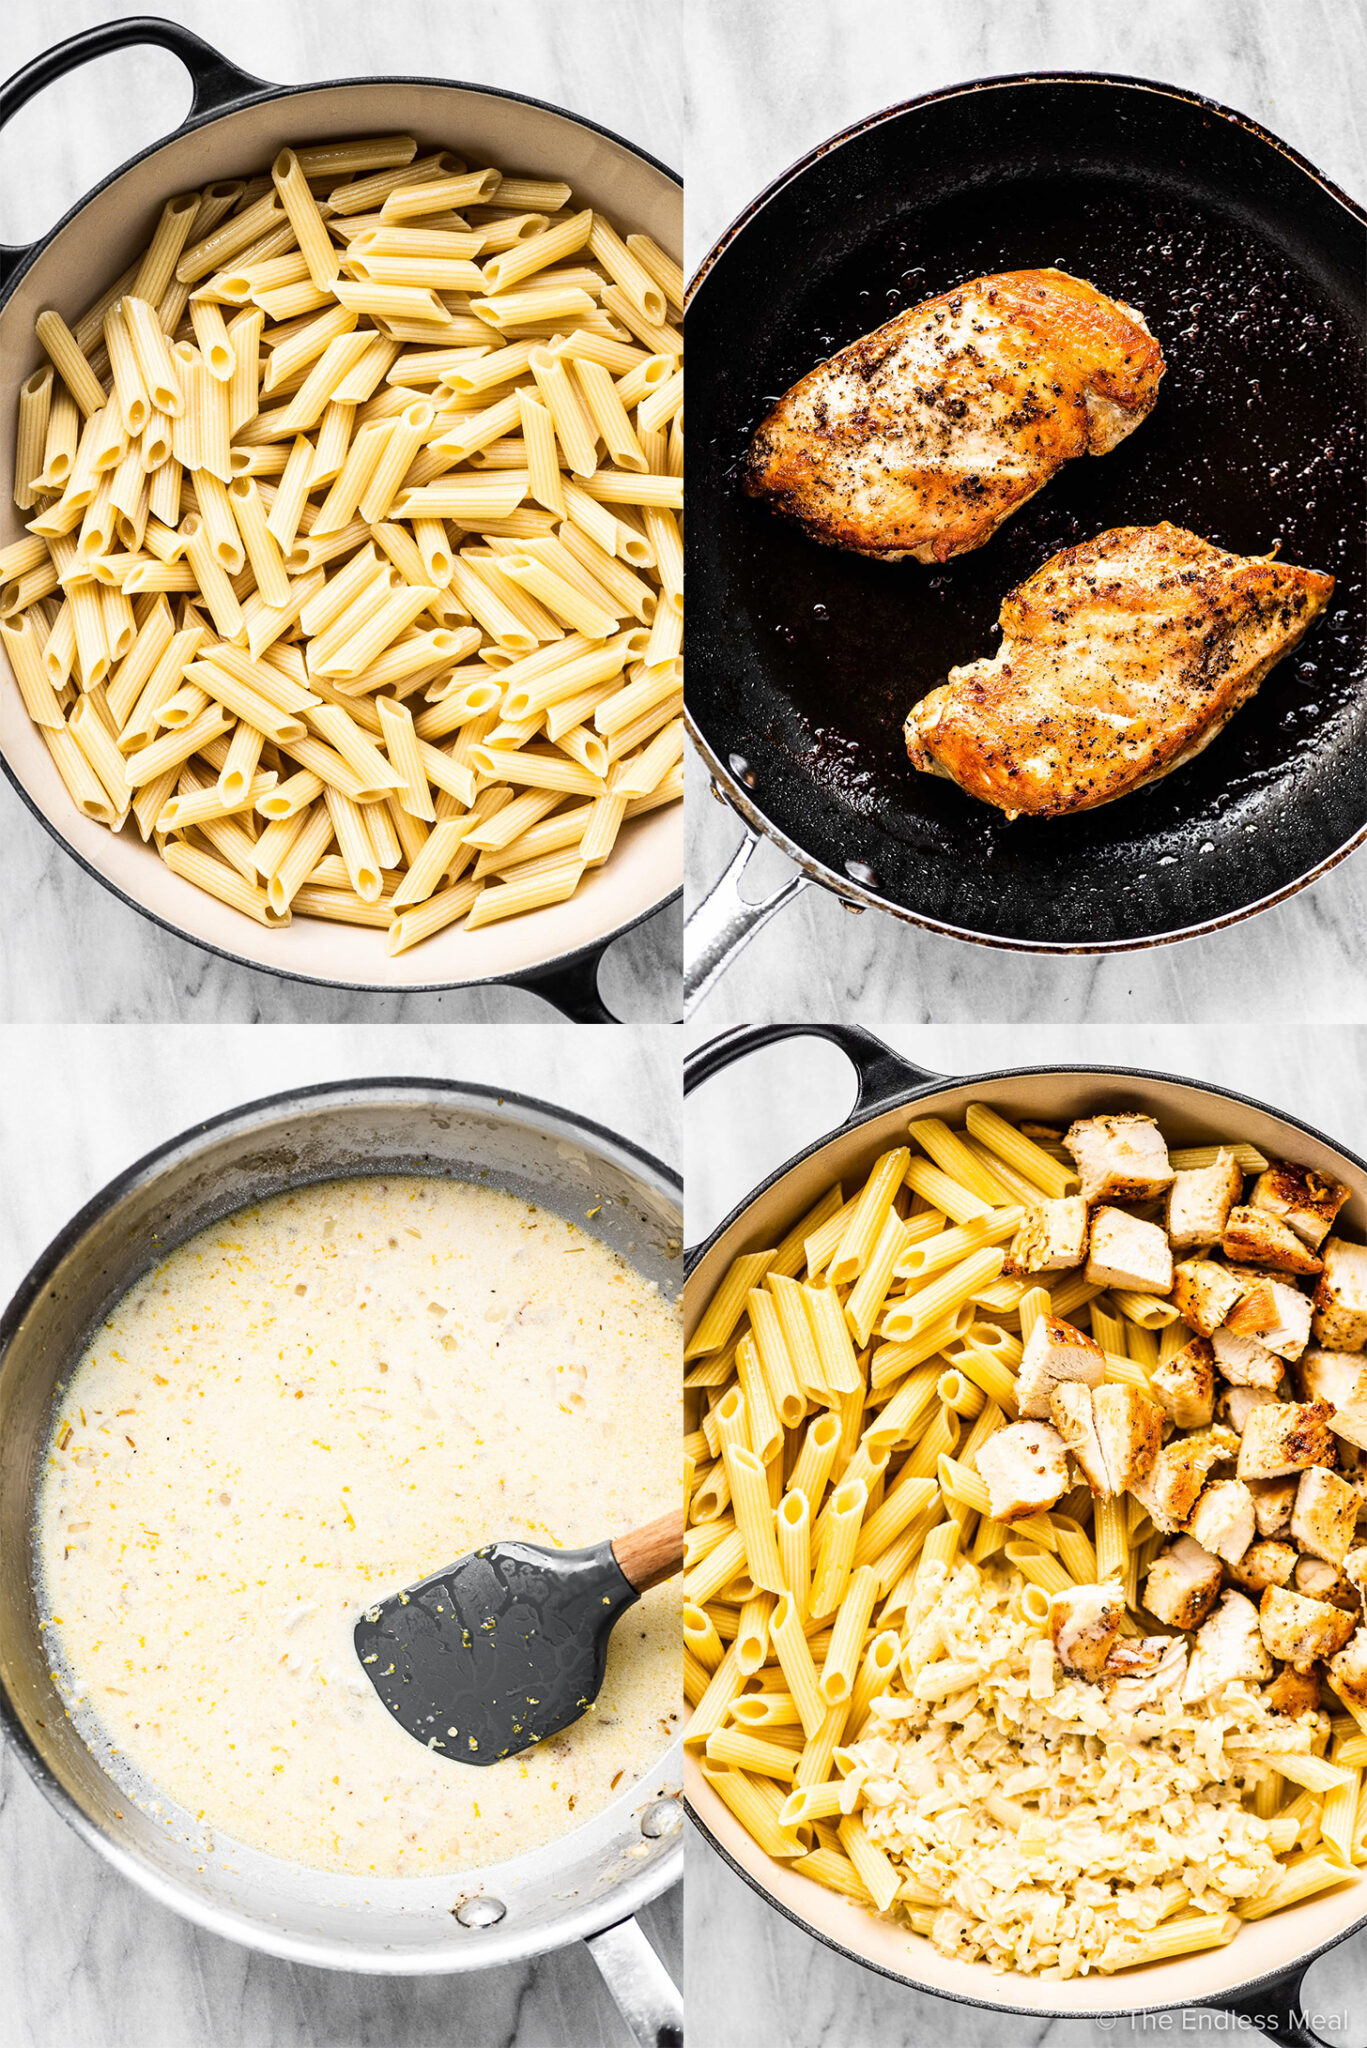 4 pictures showing how to make lemon chicken pasta.